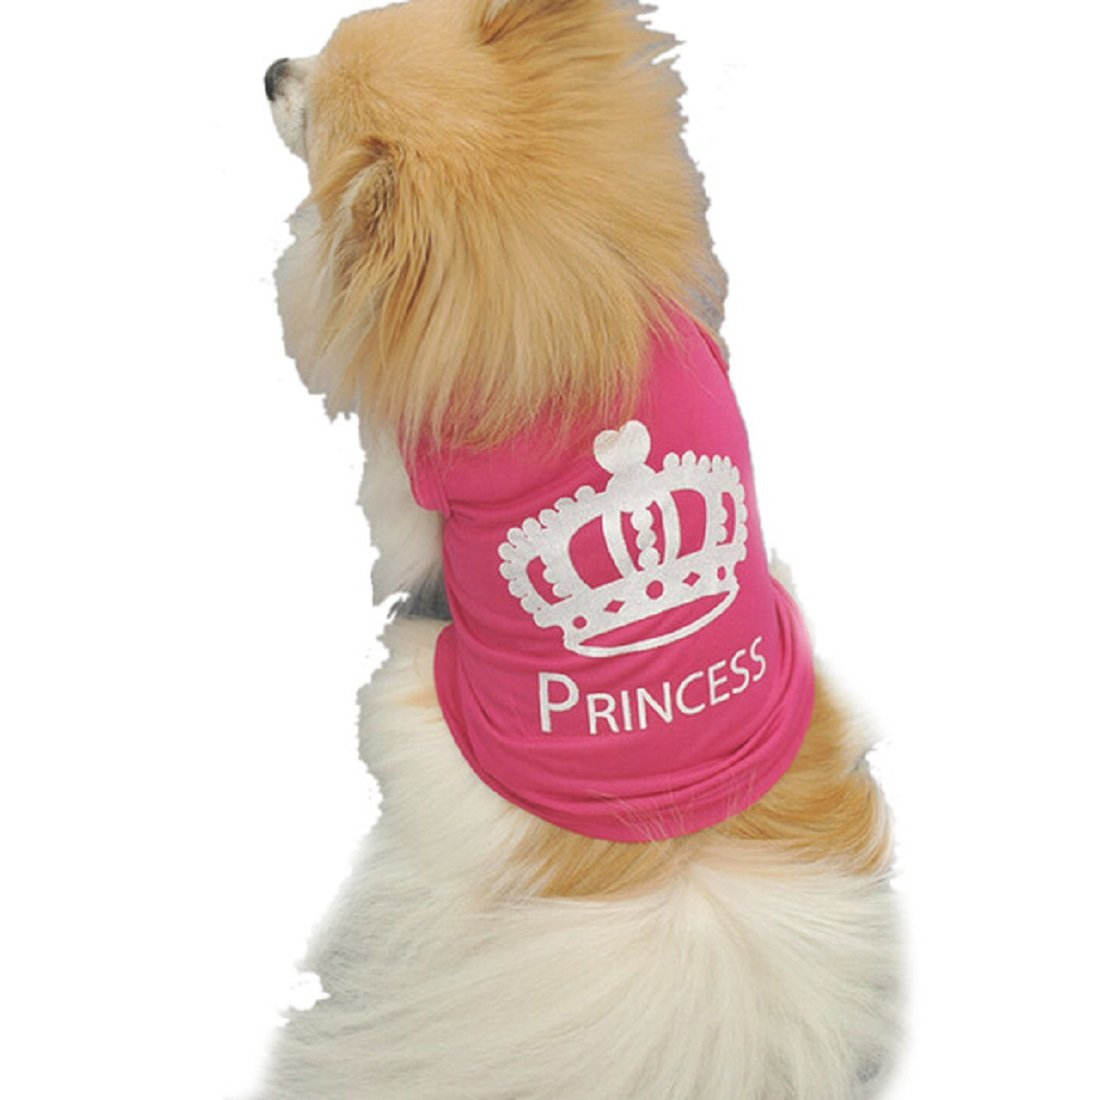 Inception Pro Infinite Costume - Stampa - Princess - Principessa - Cane ( S )